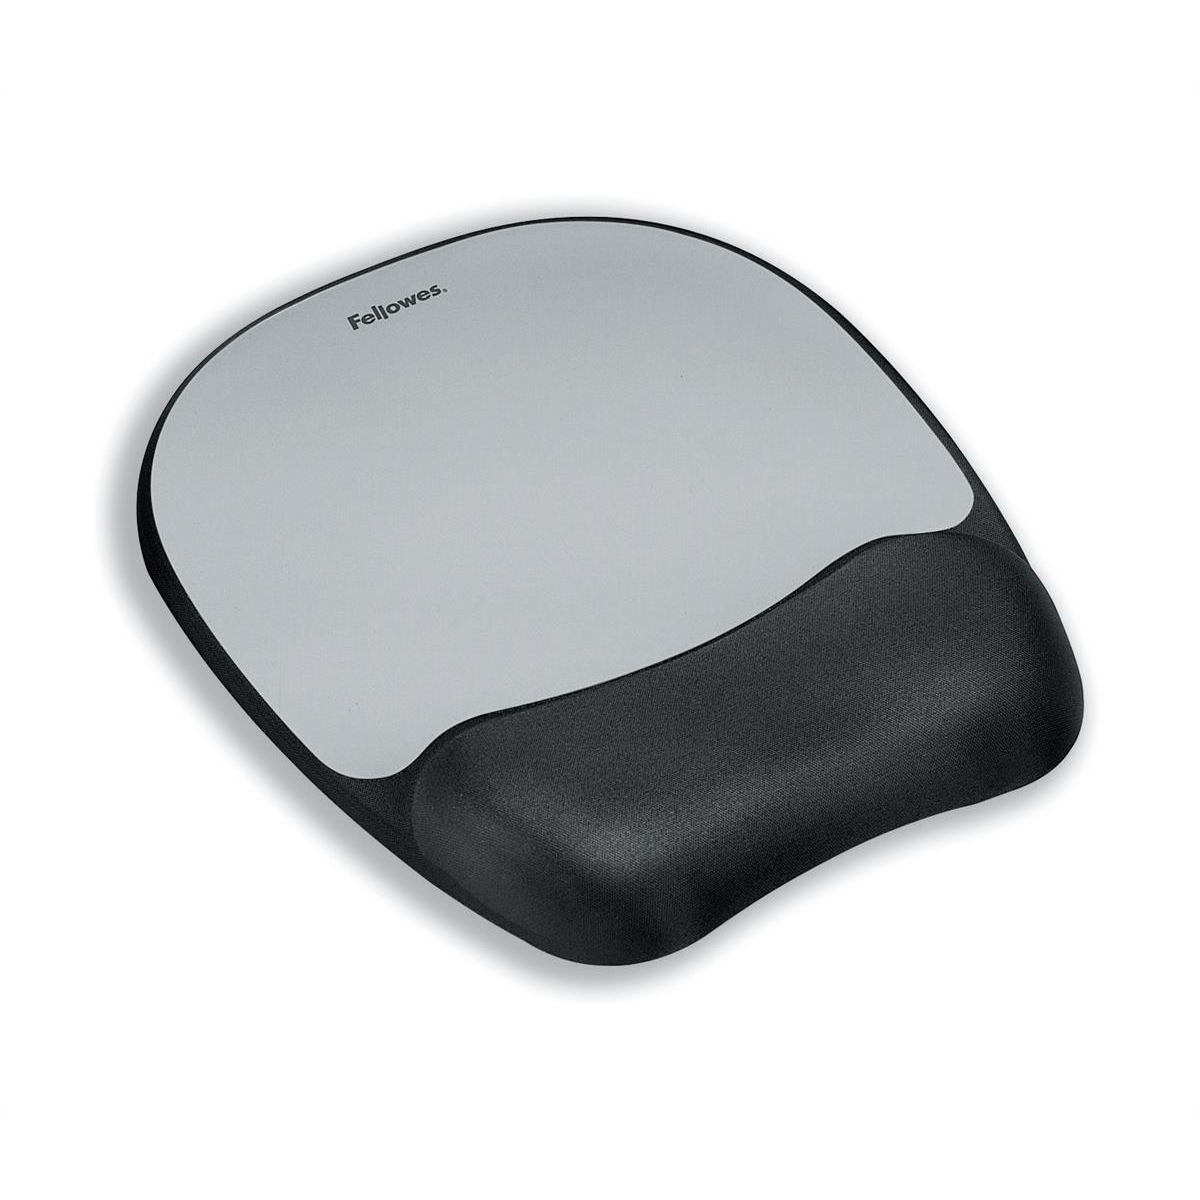 Mouse pads Fellowes Mousepad Non-skid Memory Foam Silver Ref 917580